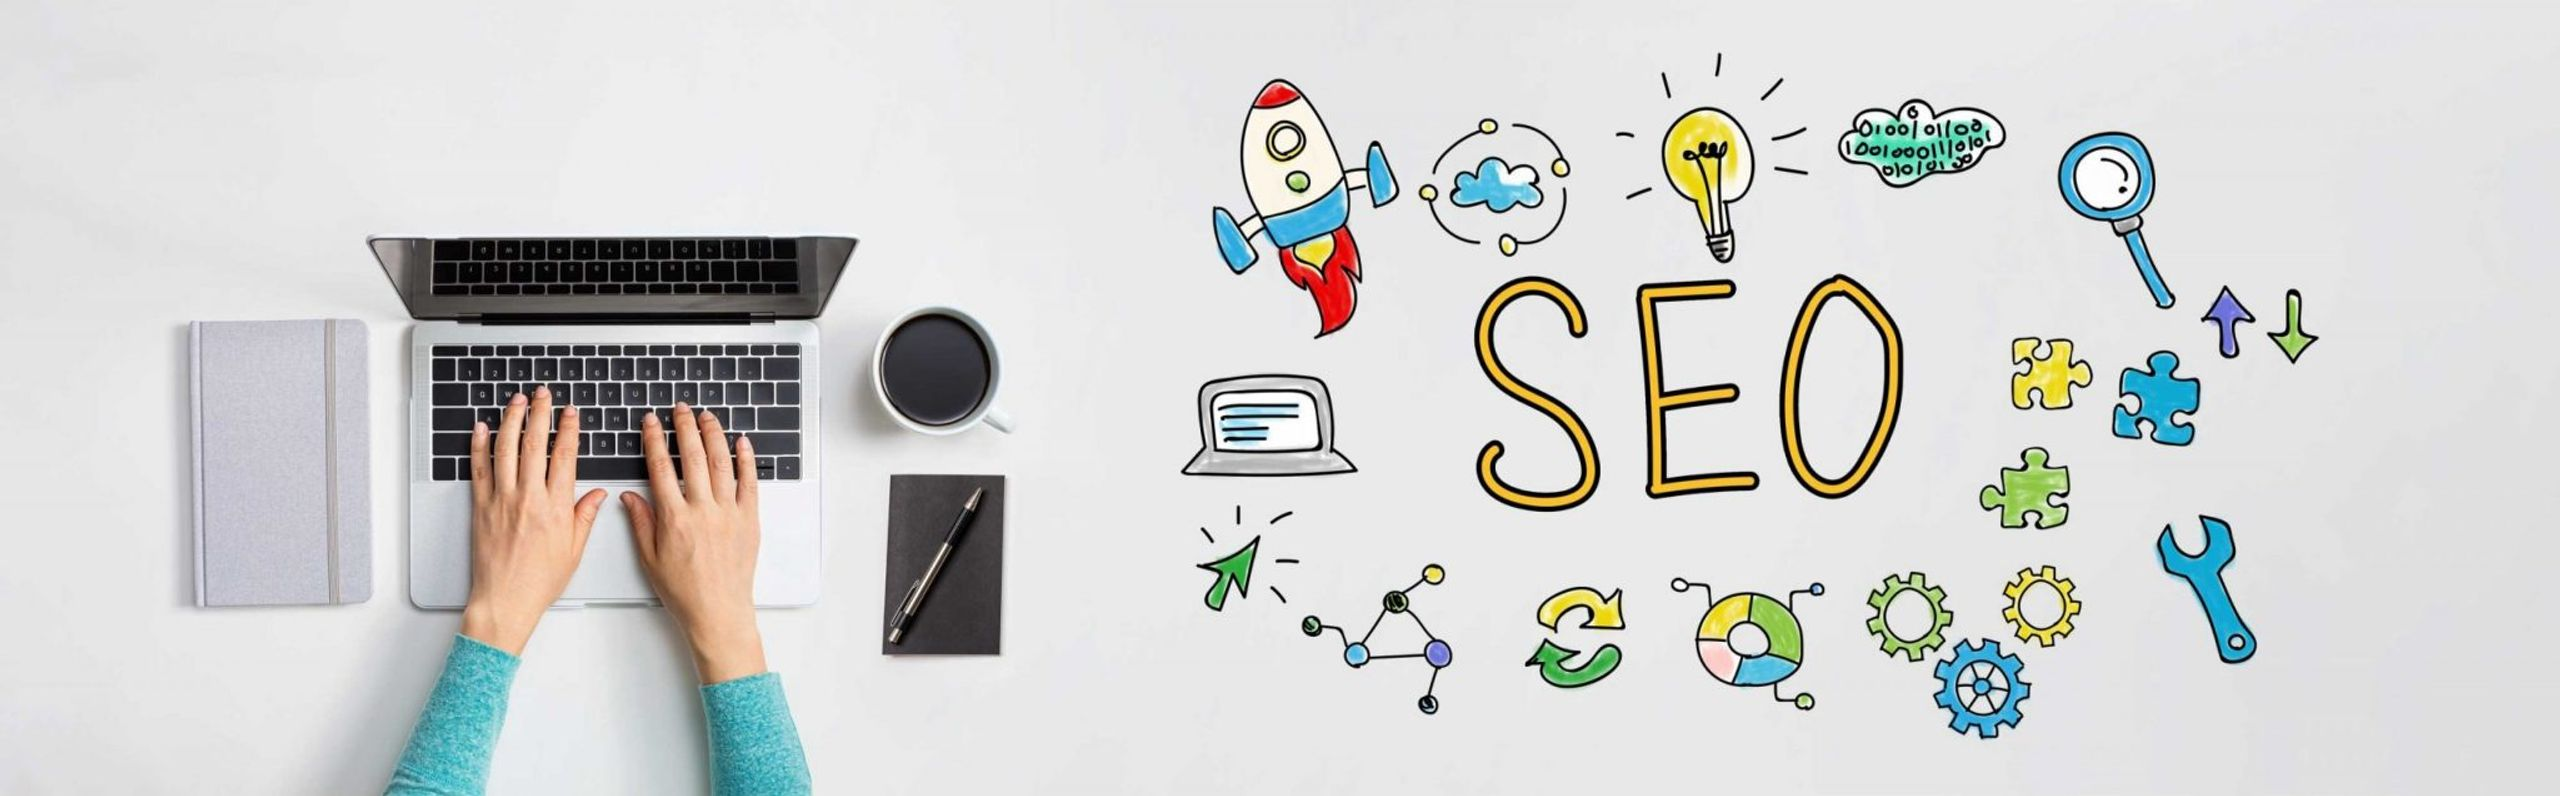 SEO Search engine optimization for website